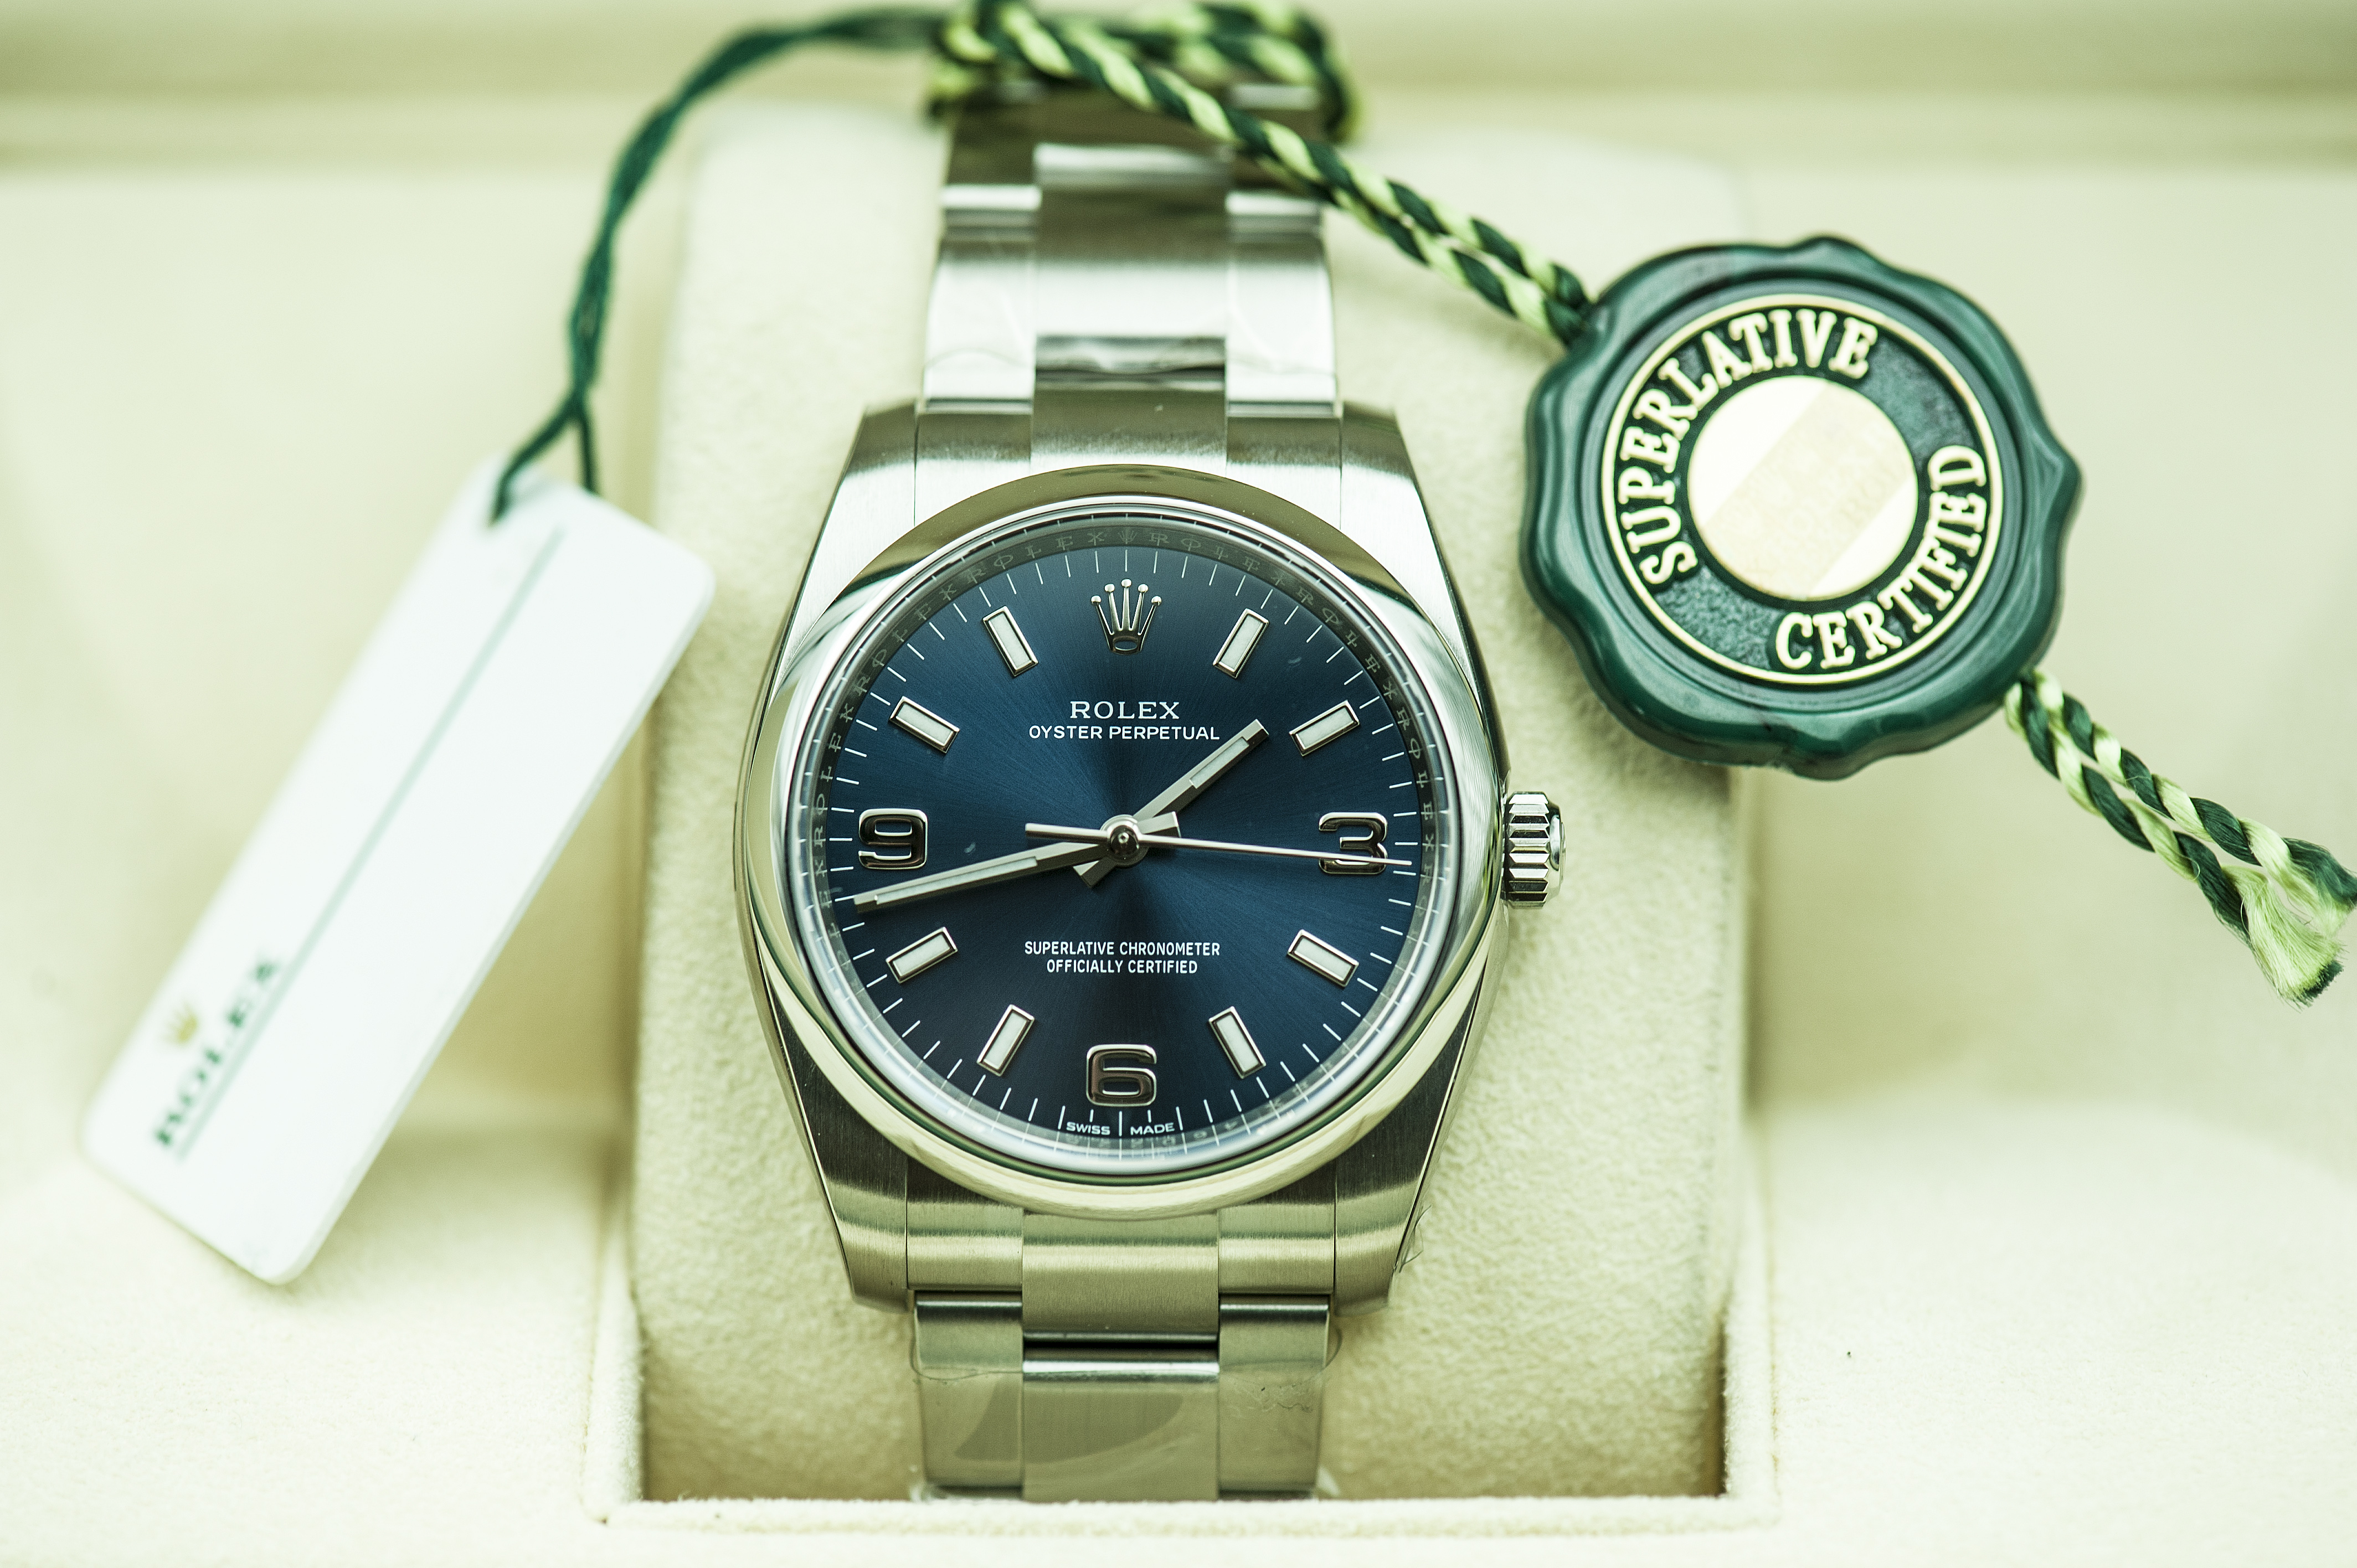 Đồng Hồ Rolex Oyster Perpetual 114200